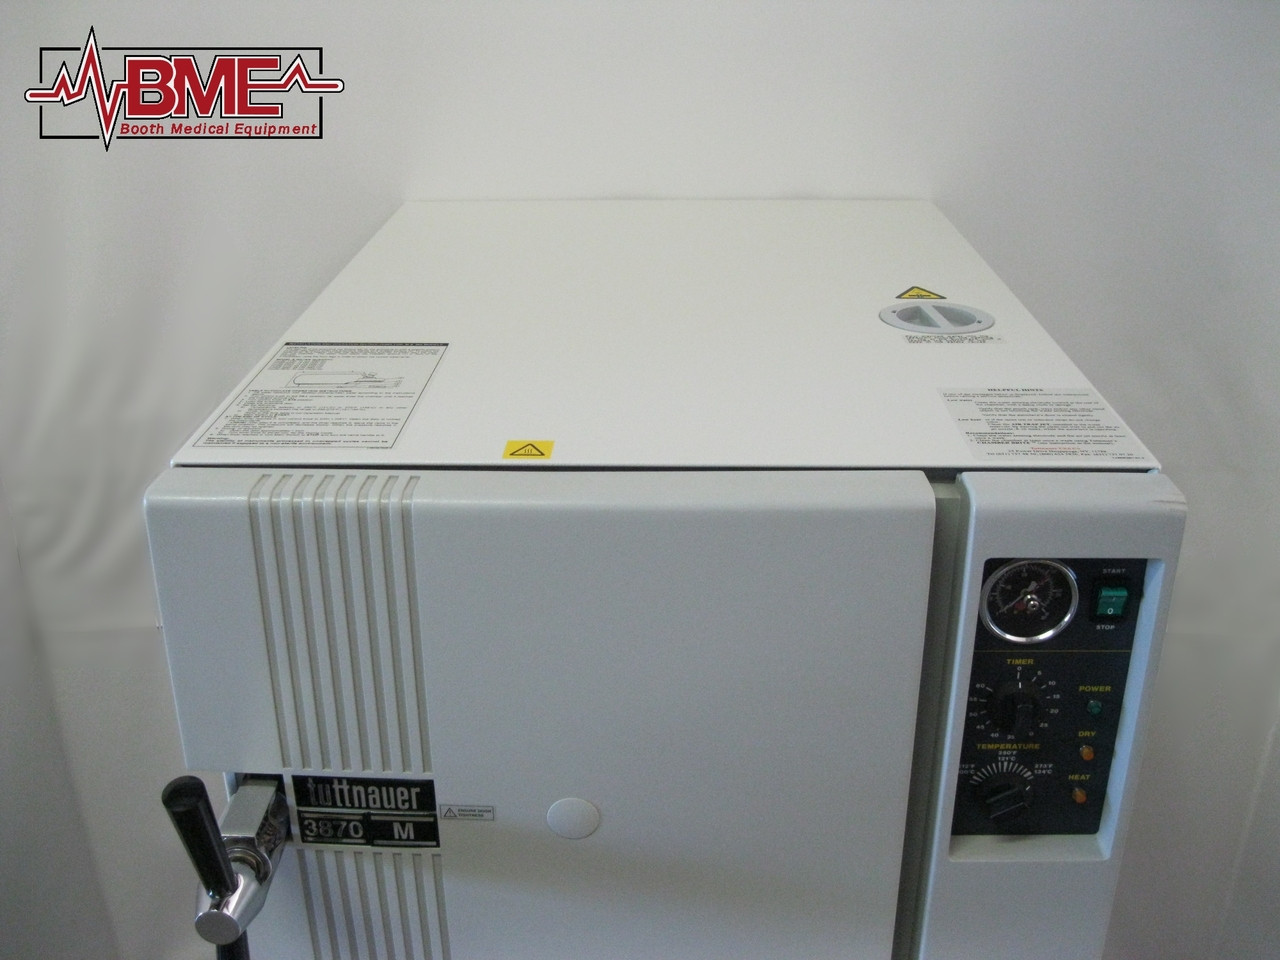 Booth Medical - Tuttnauer 3850M 230V Autoclave - Top